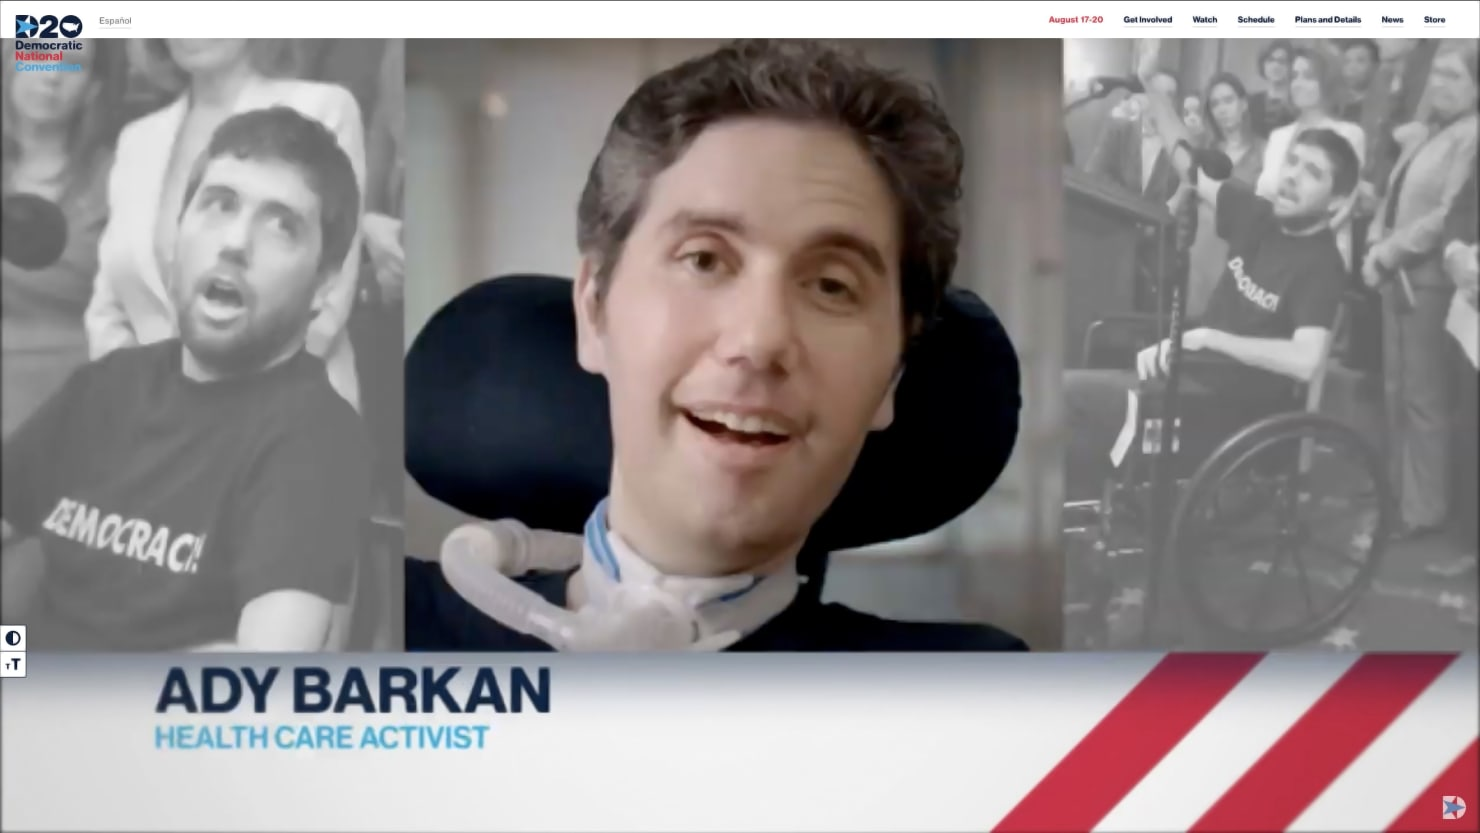 Ady Barkan, A Man Without a Voice, Delivers Most Powerful DNC Speech